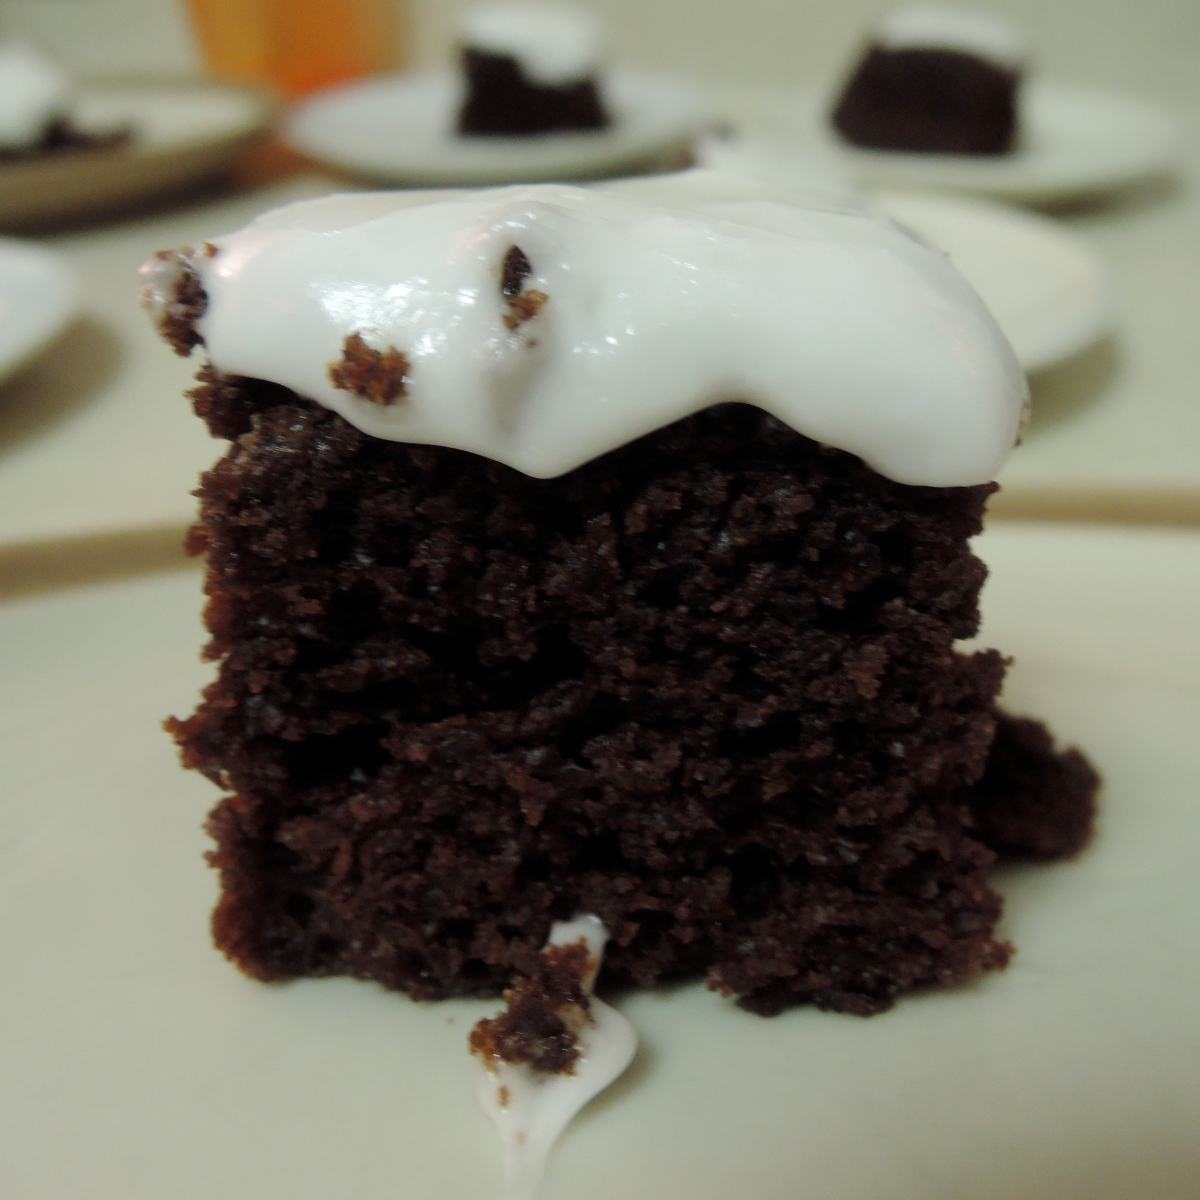 Peppermint Chocolate Cake (Eggless) with Peppermint Icing